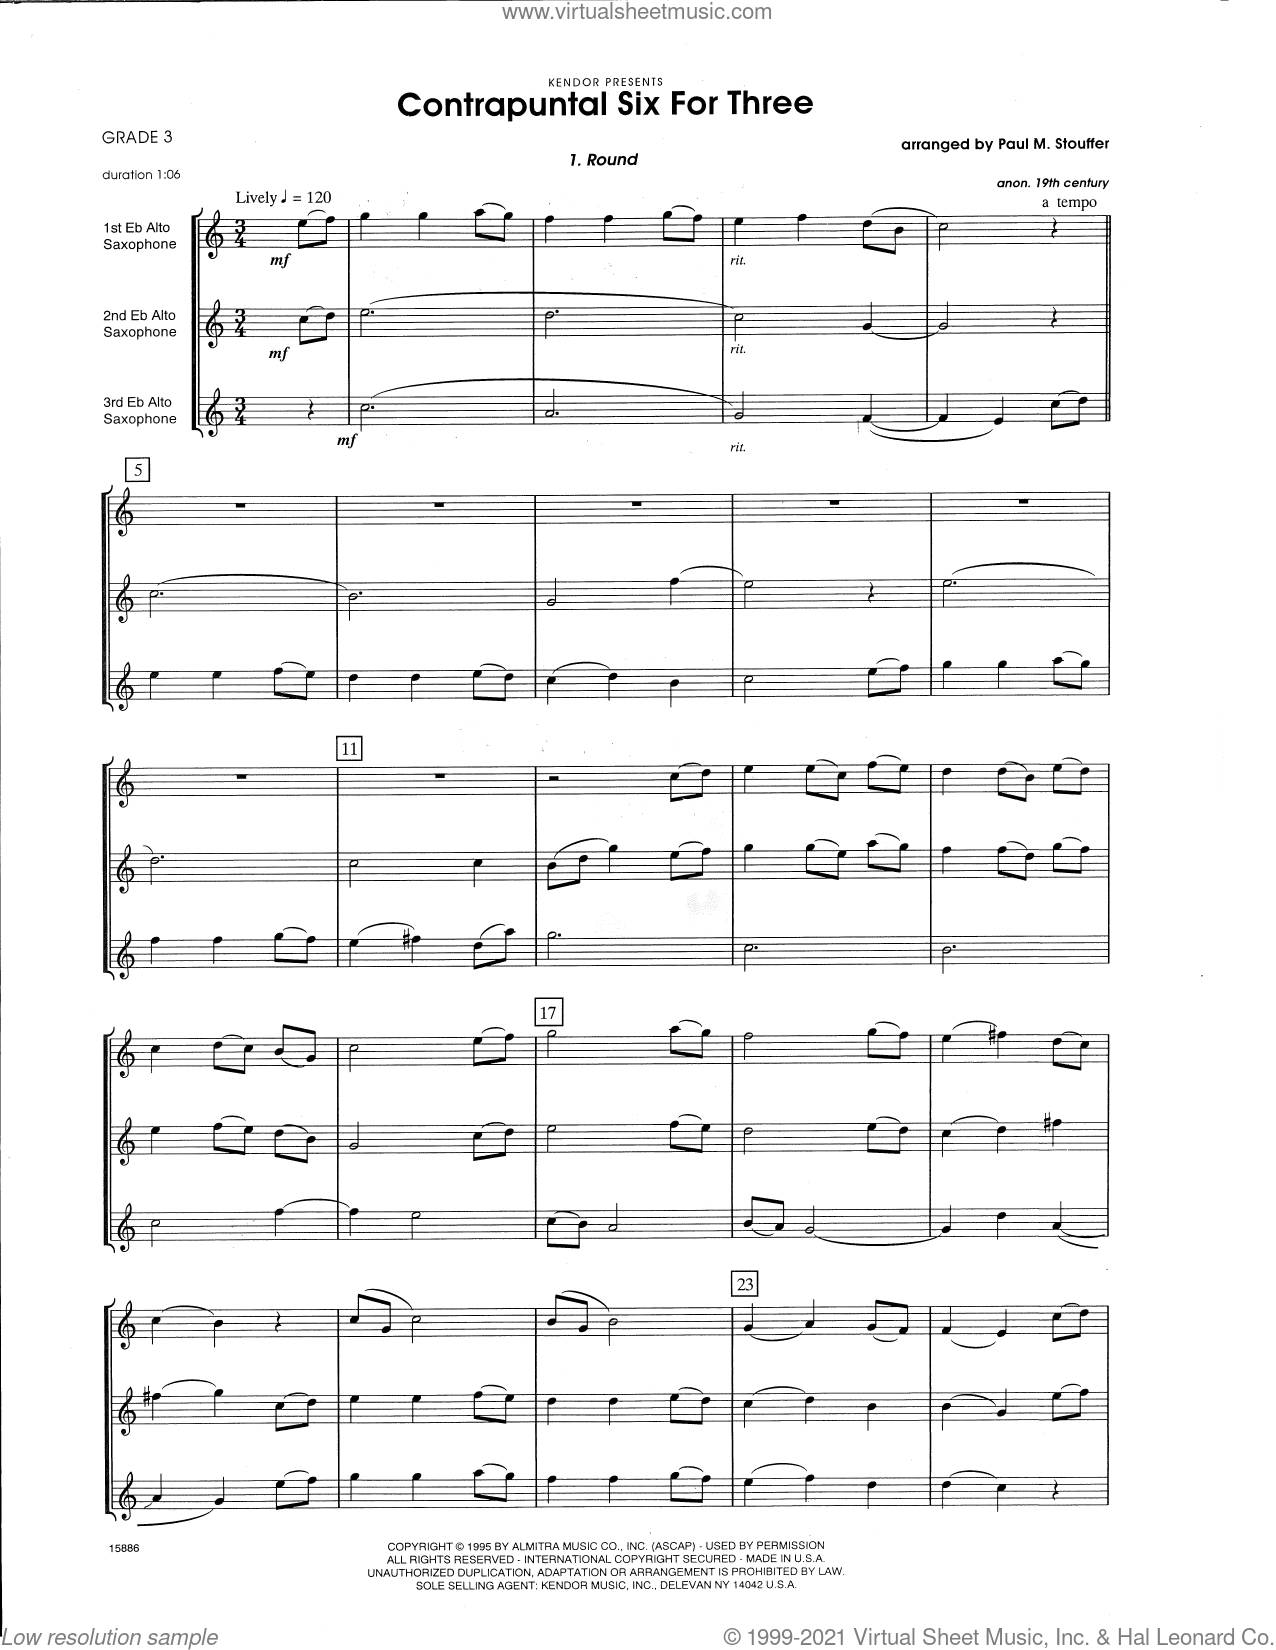 Contrapuntal Six For Three (COMPLETE) sheet music for saxophone trio by Paul M. Stouffer and Miscellaneous, classical score, intermediate skill level